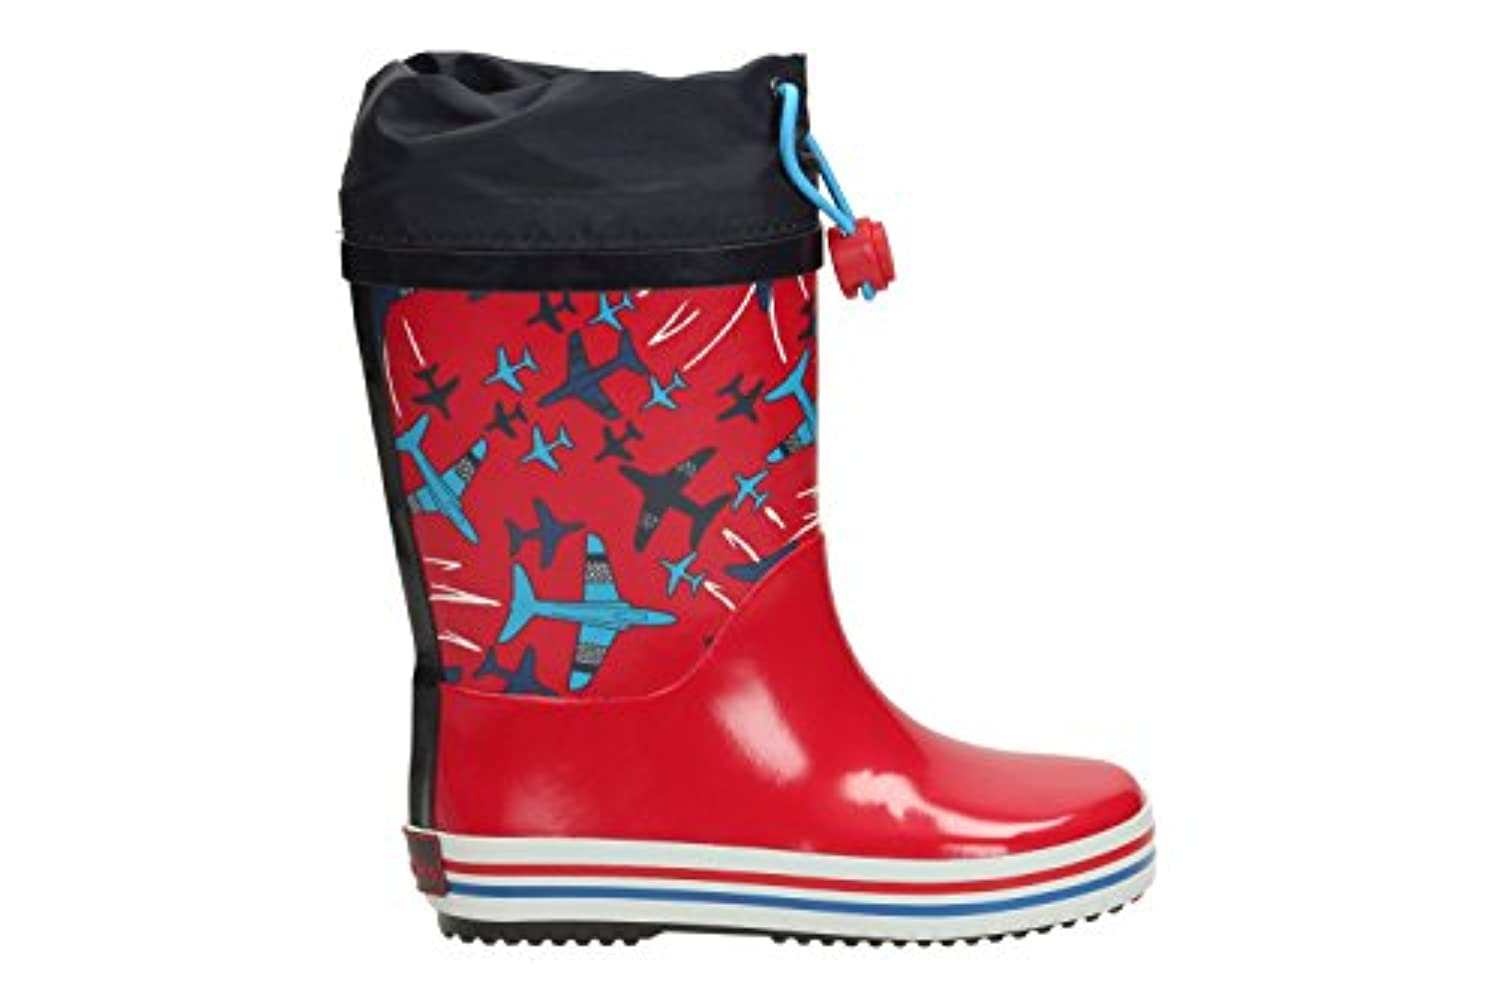 Clarks Boys Seasonal Tarri Fly Inf Synthetic Wellies In Red Combi Wide Fit Size 4.5